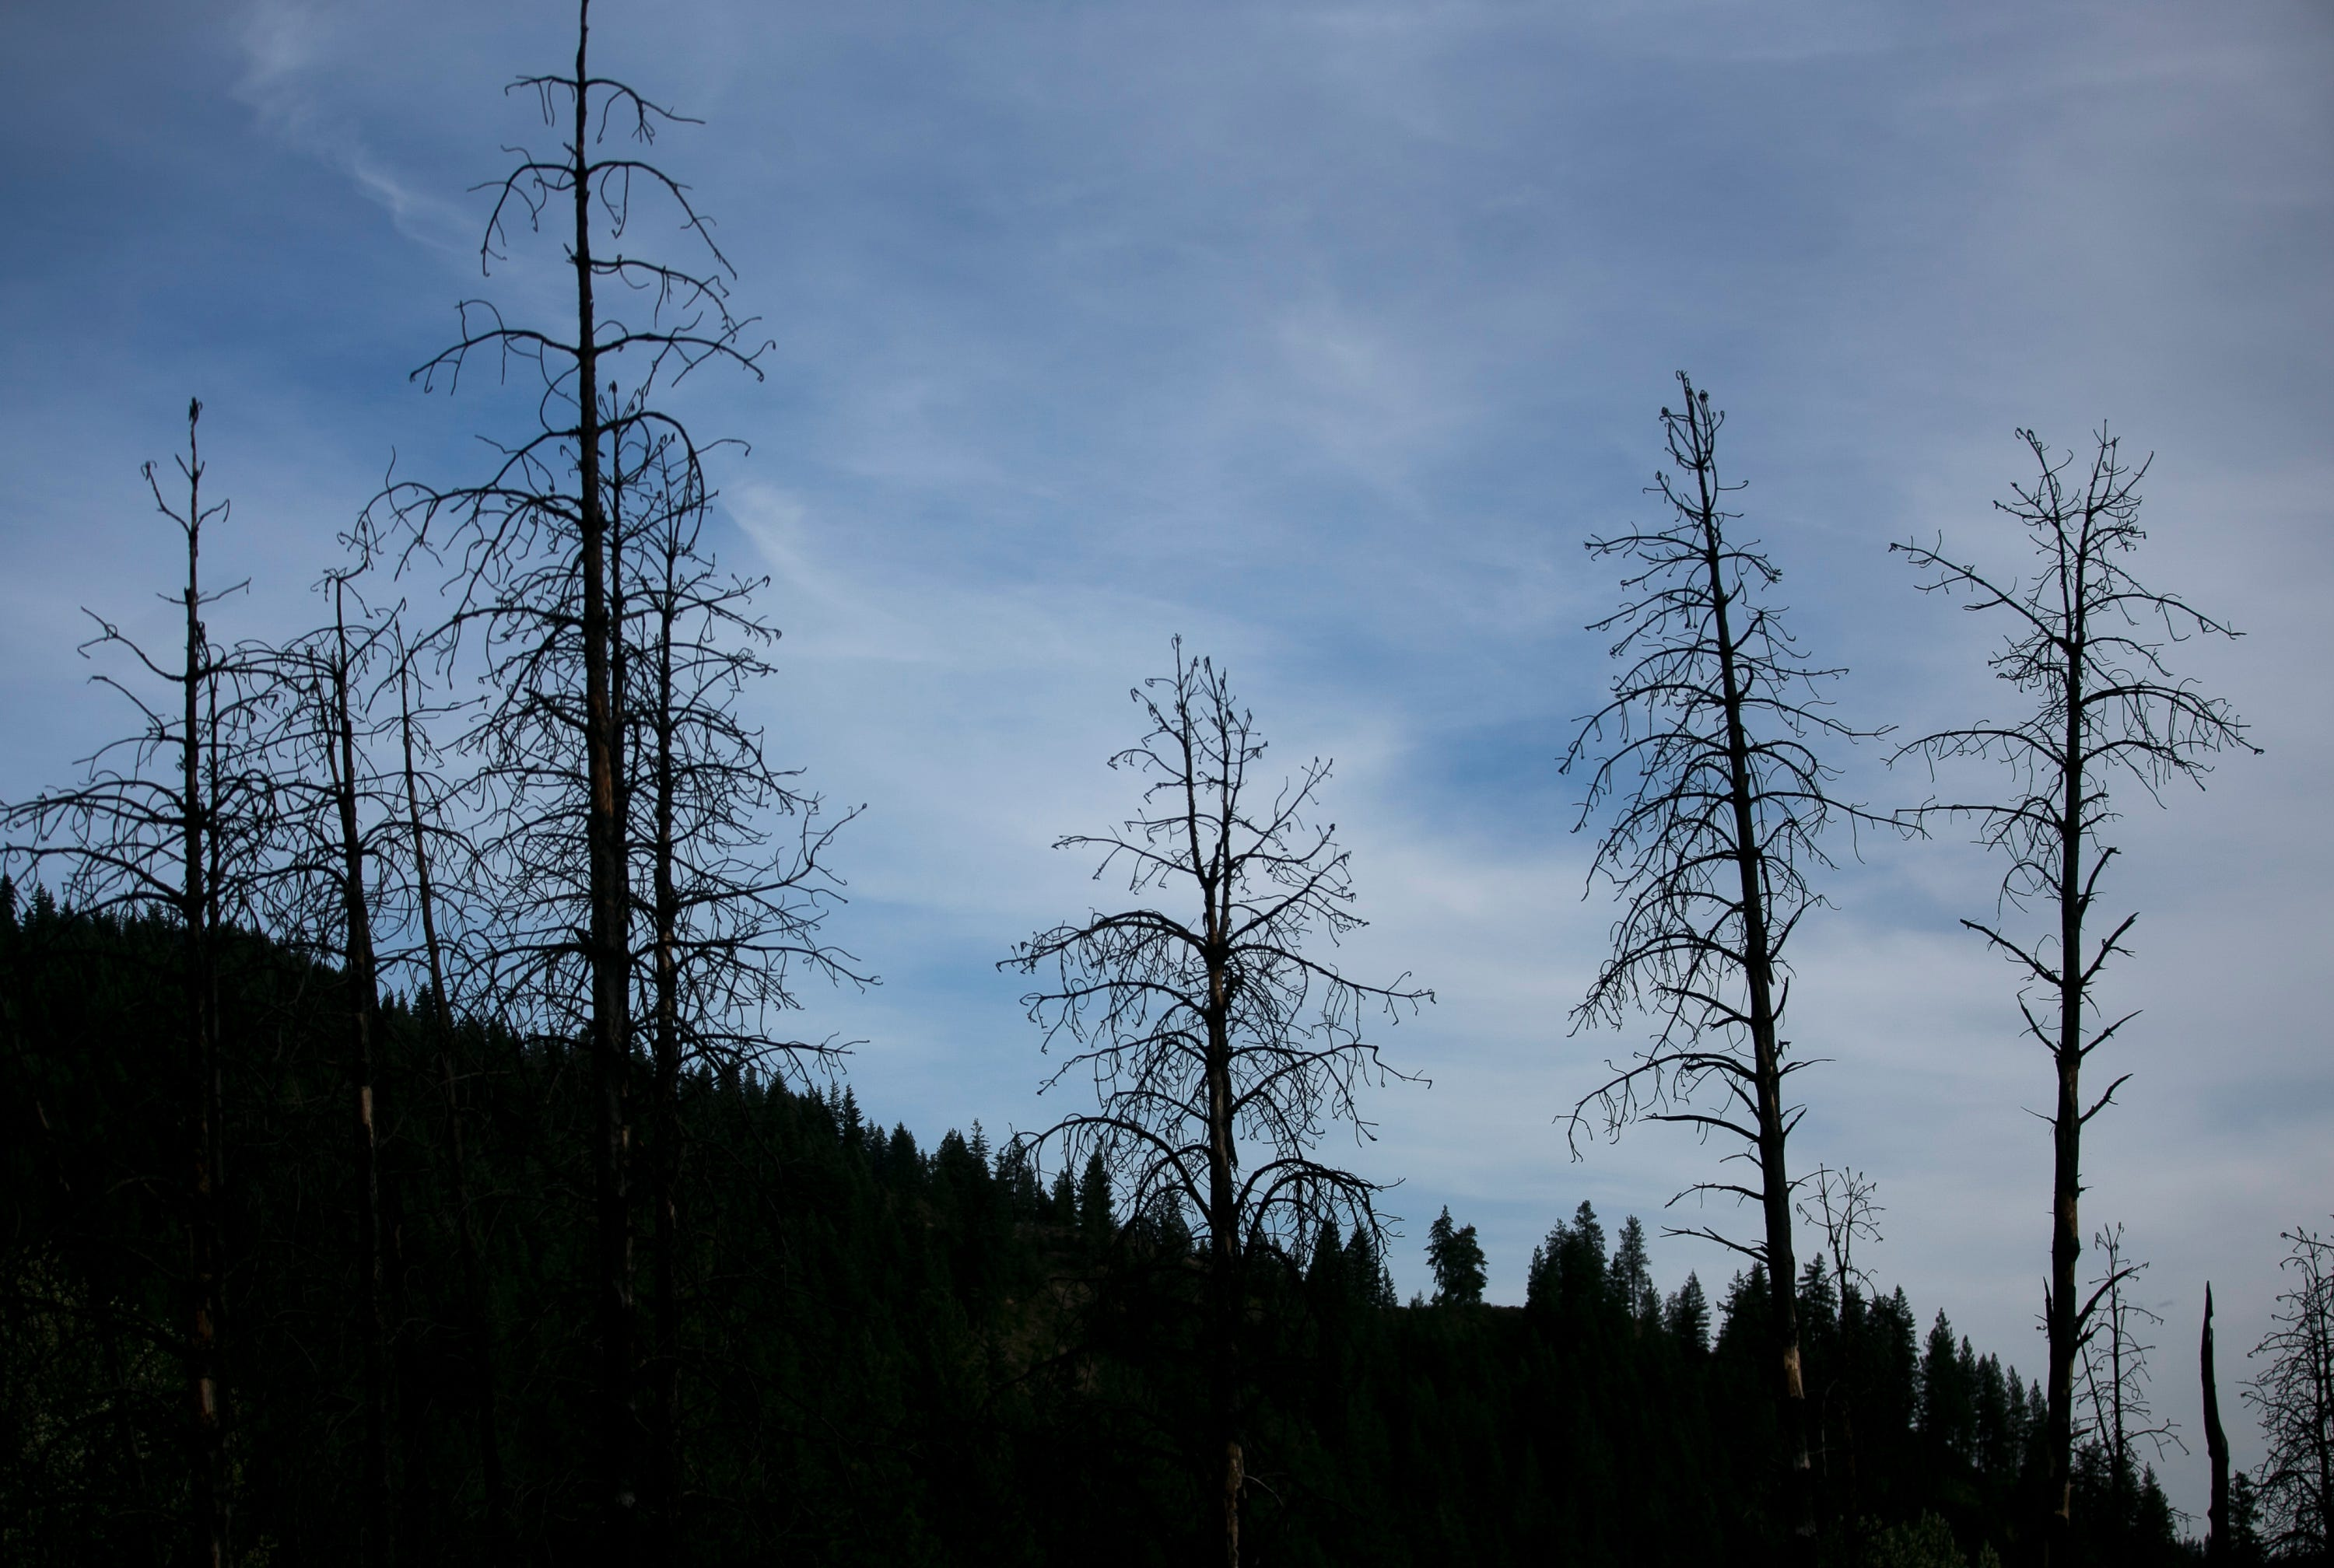 The burned remains of trees stand near the site of the 2017 Spromberg fire in Leavenworth, Washington, on June 17, 2019. The fire was started at the site of an old lumber mill and spread into the surrounding forest.